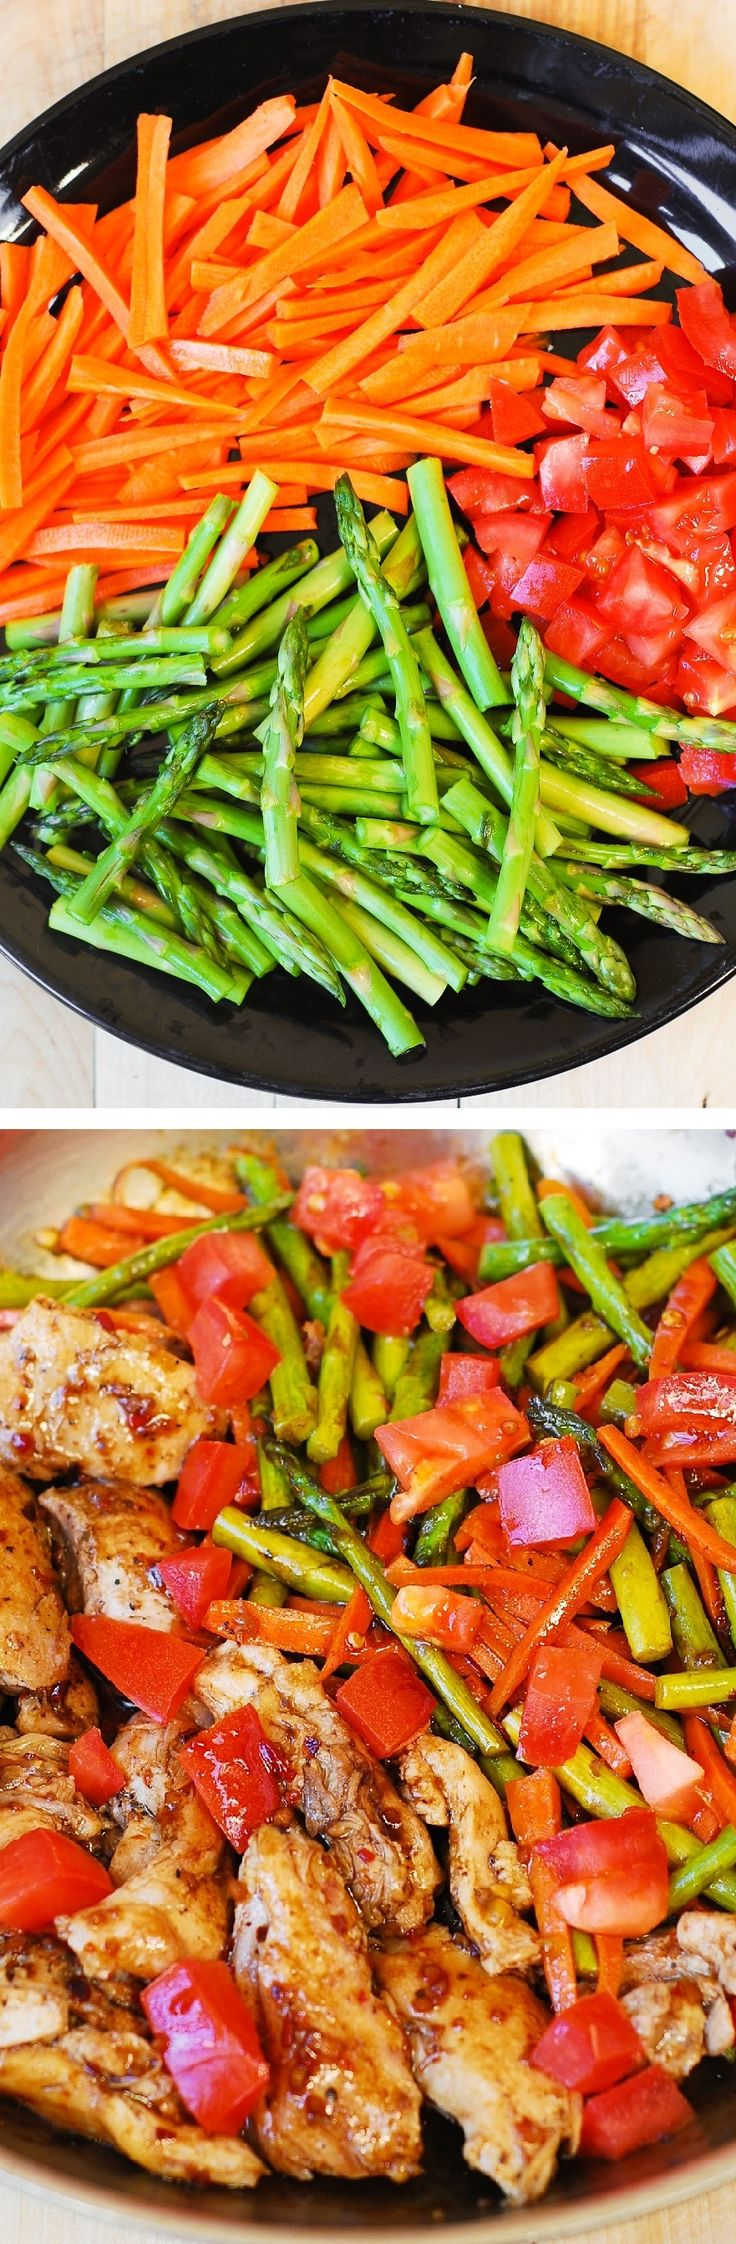 Best 25 Weight loss meals ideas only on Pinterest Weight loss